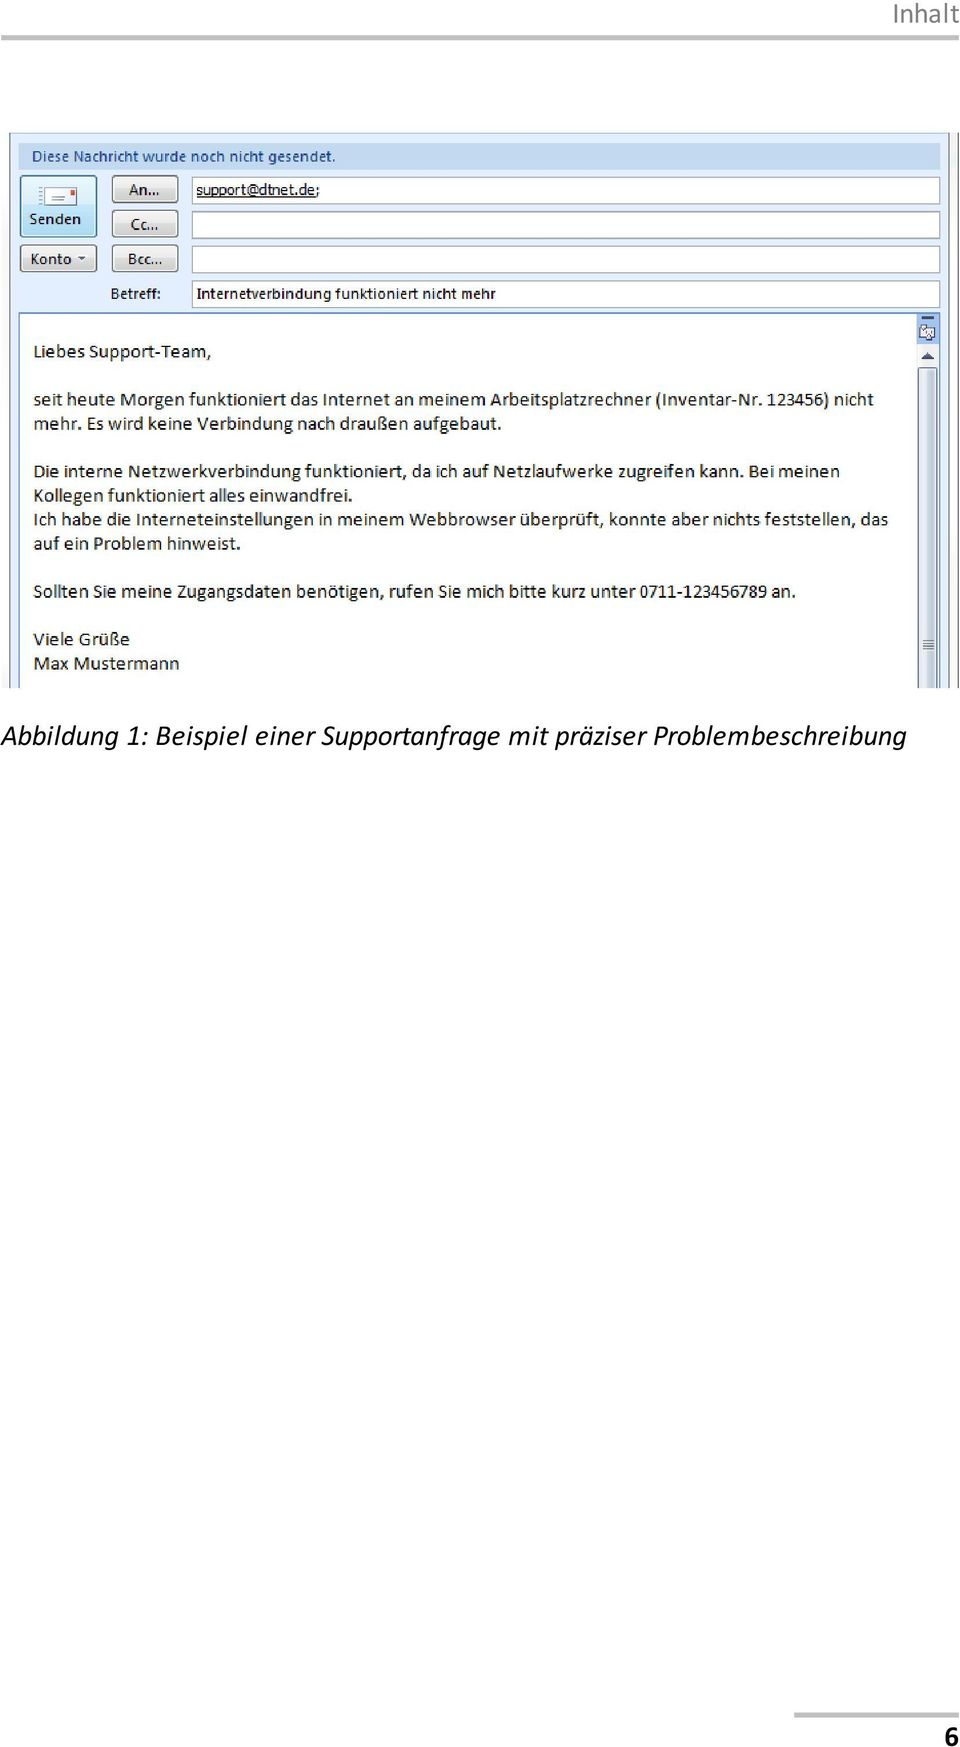 Supportanfrage mit